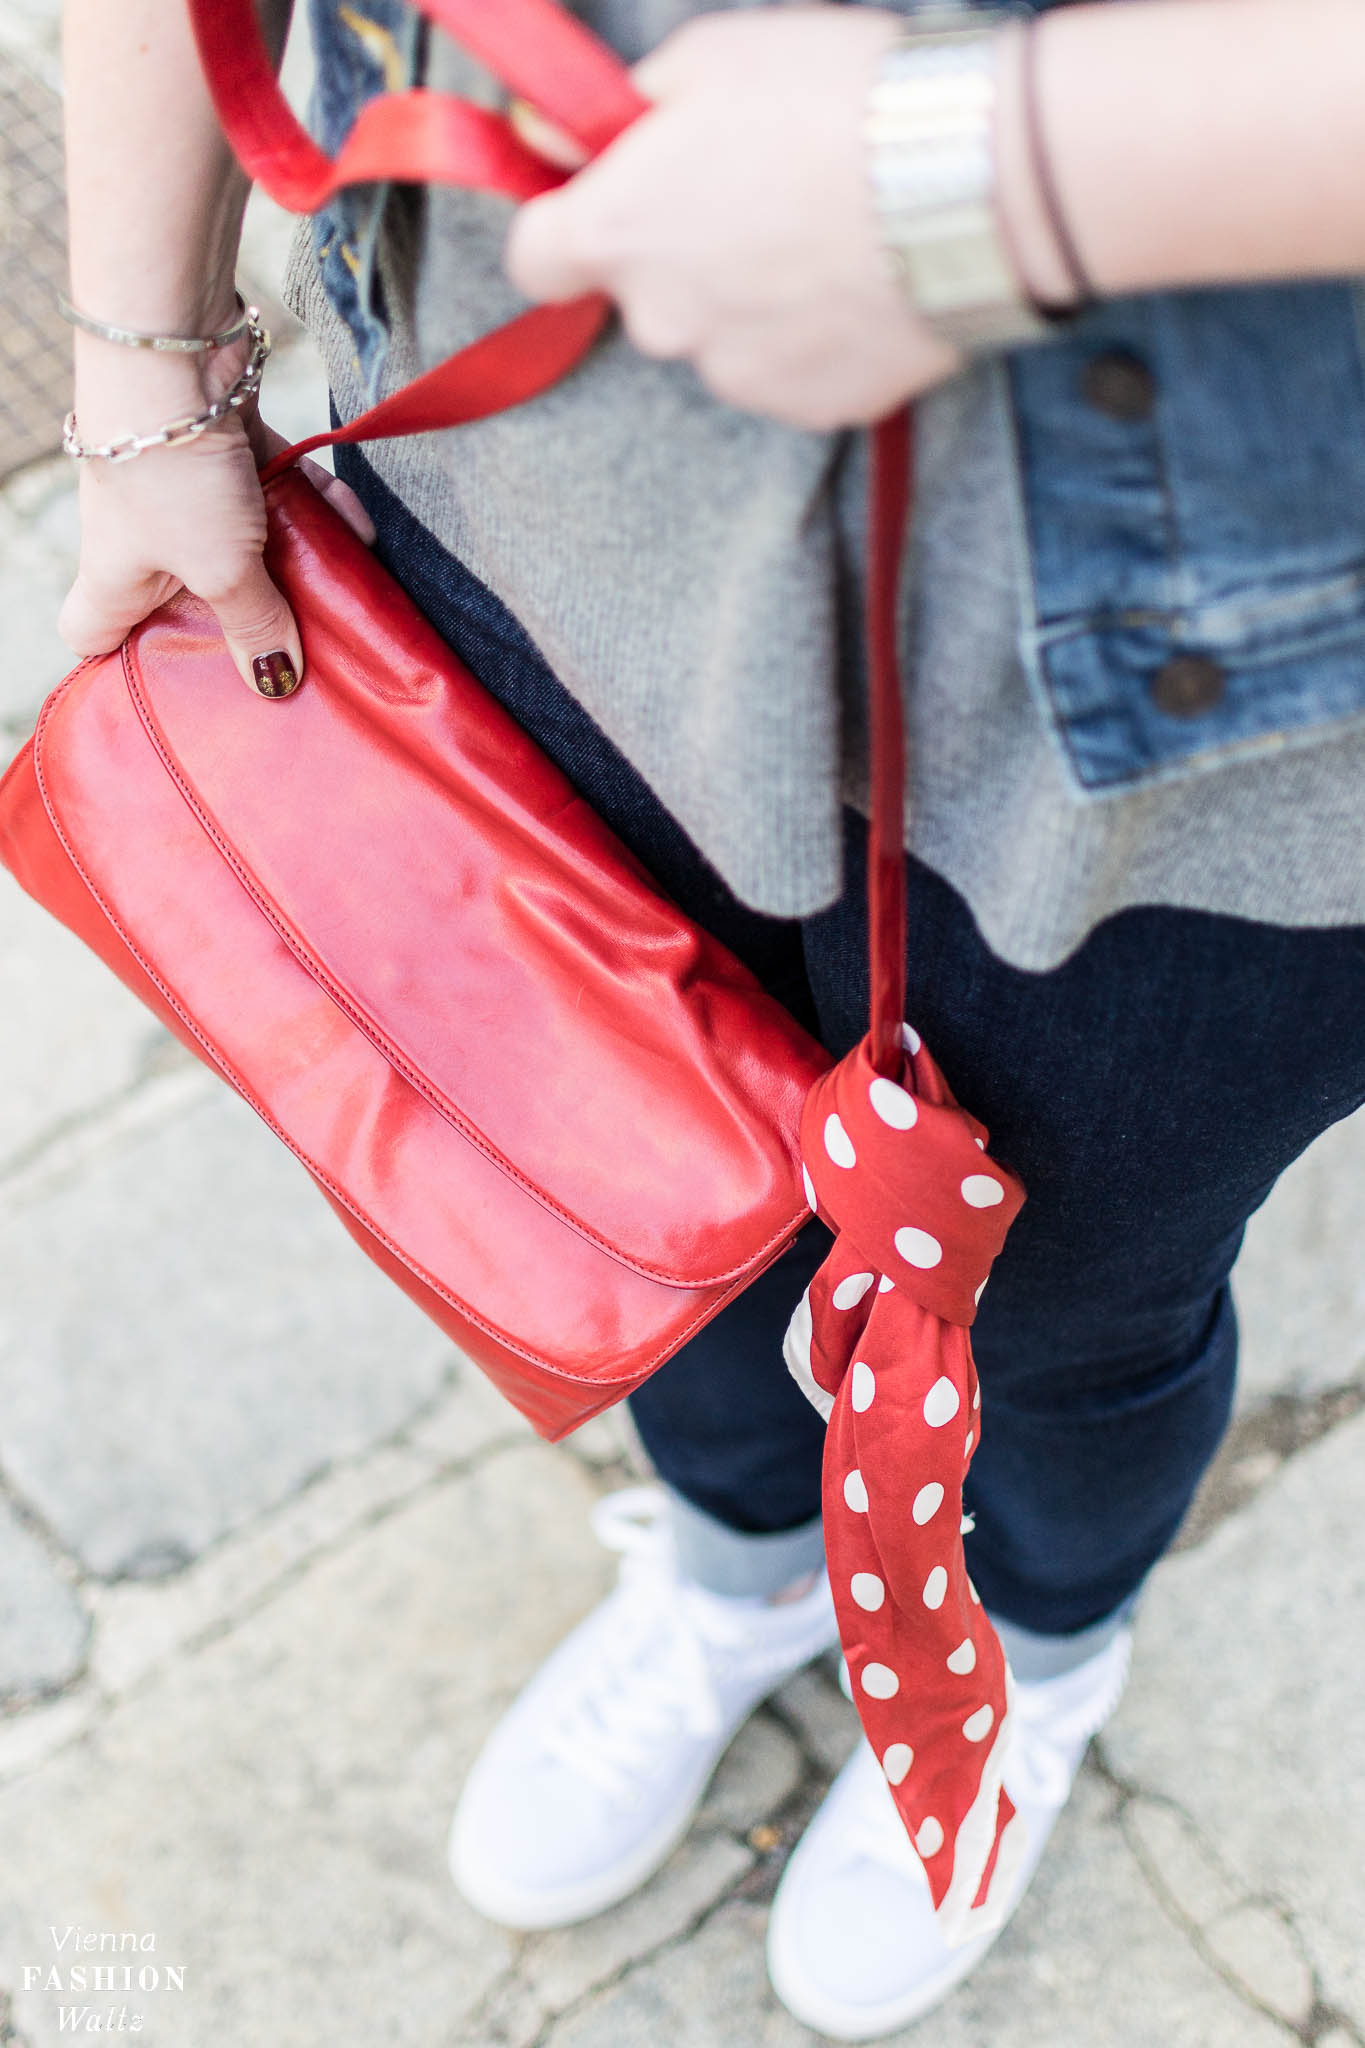 Red Bag, Rote Tasche, Dark Denim Outfit mit Streifen Sneakers und Kaschmir Pulli | Dark Denim Jeans Streetstyle, Outfit, Denim All Over, Jeansjacke, Statement Sneakers mit Streifen von Deichmann, Vintage Bally Bag, Fashion Trends